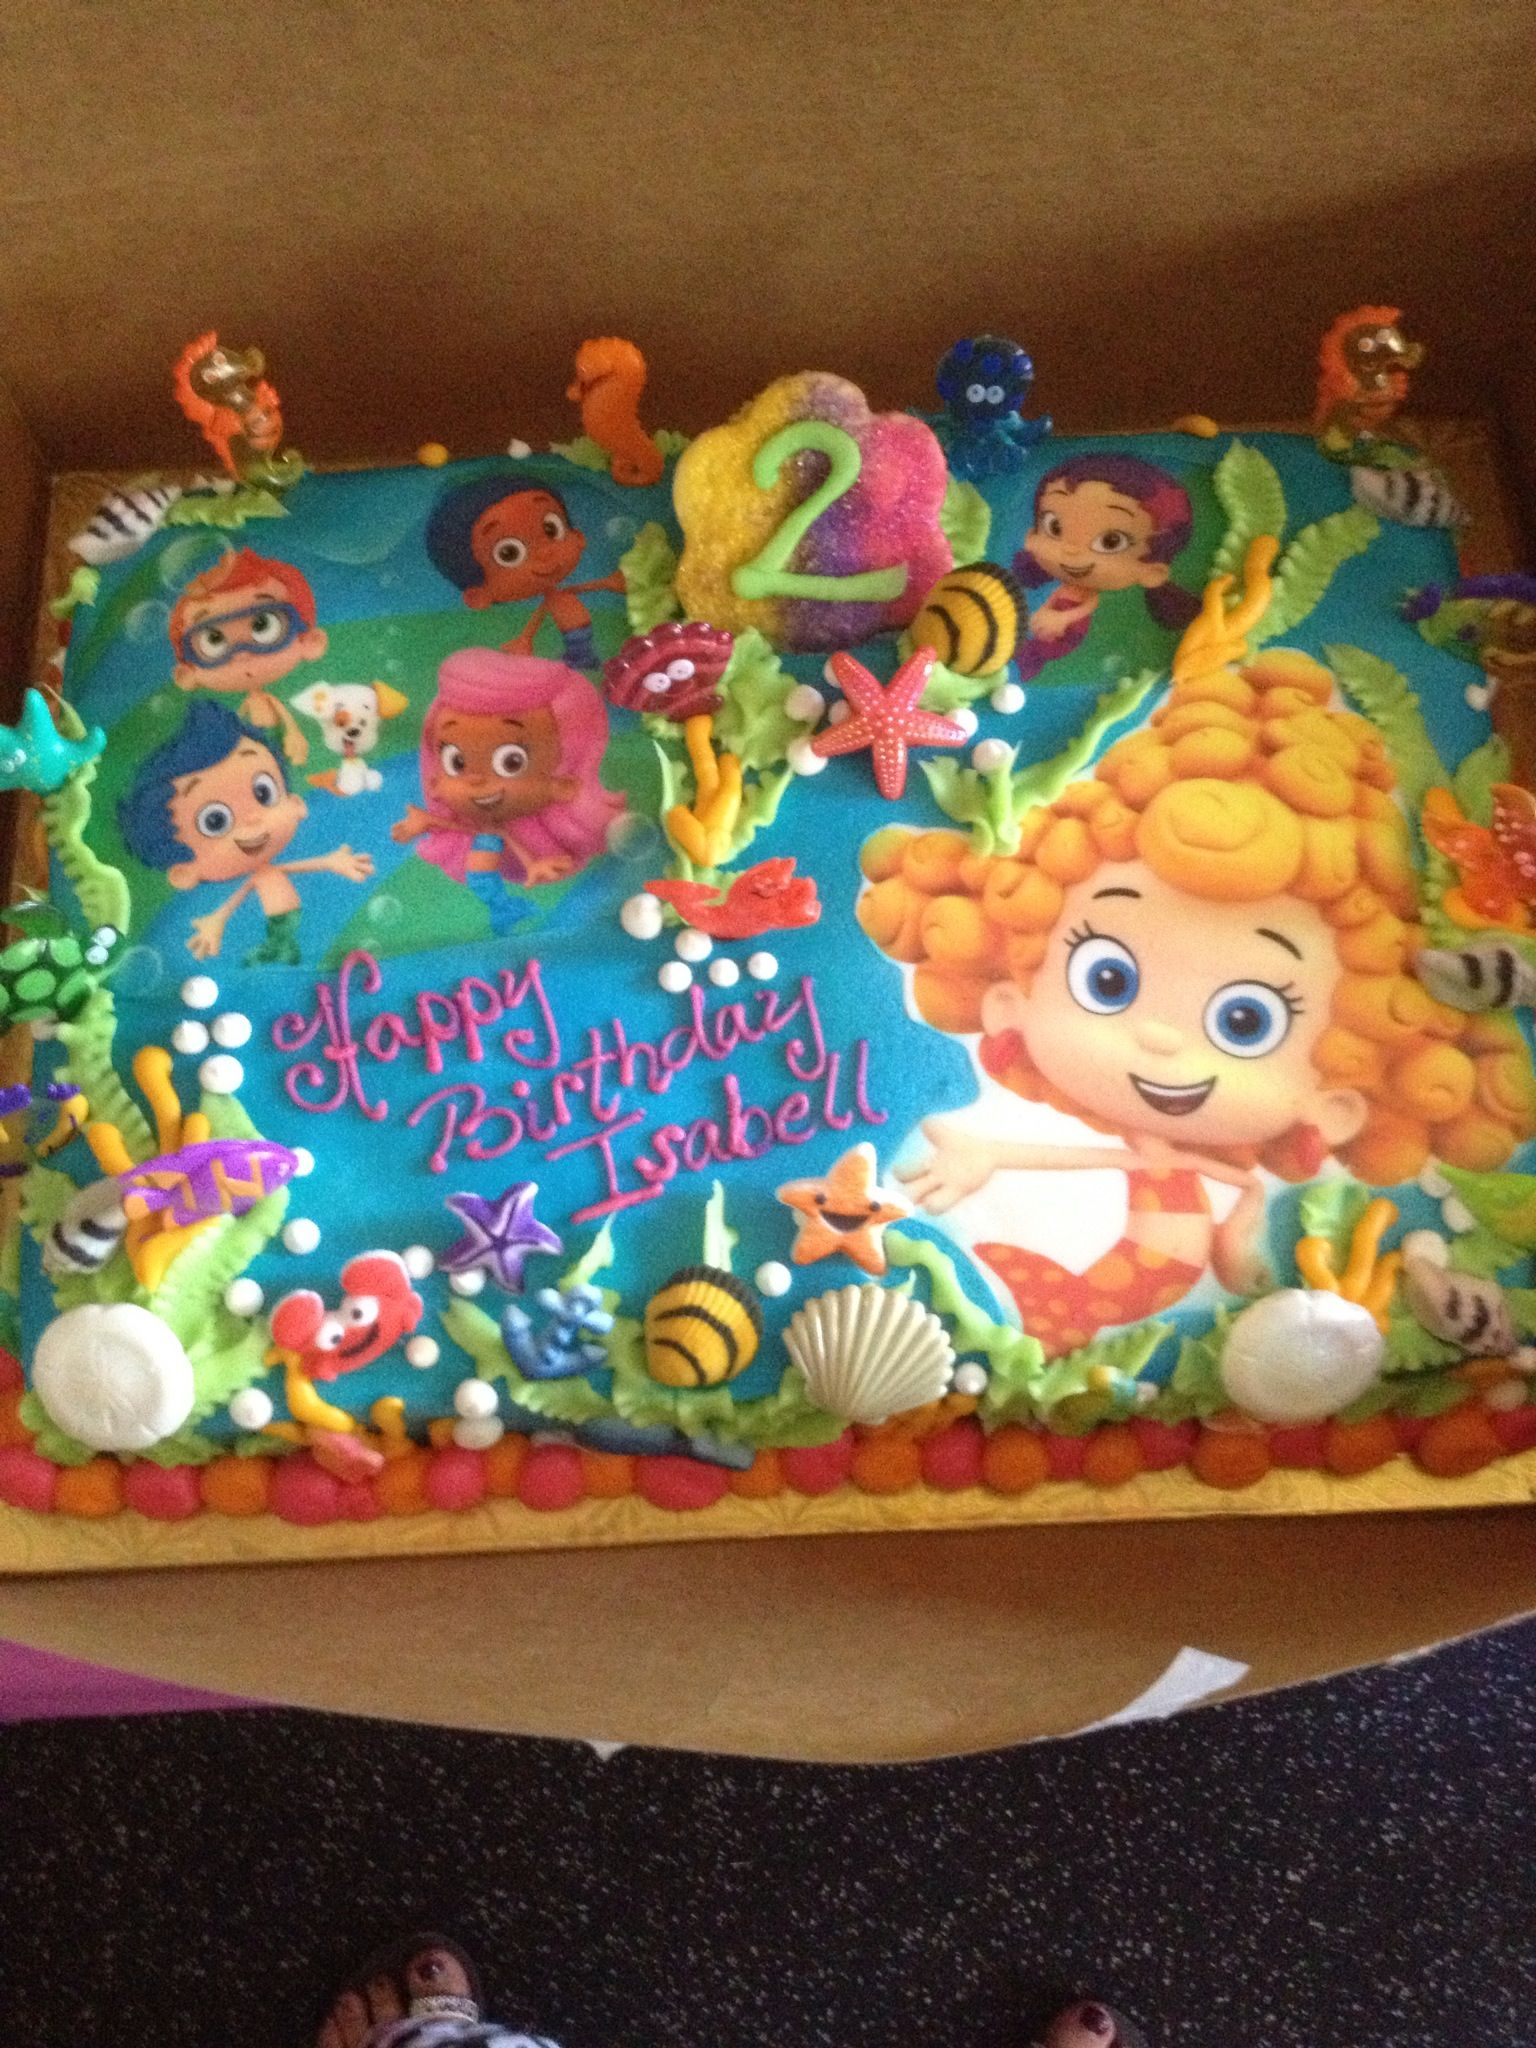 Isabell S Bubble Guppies Birthday Cake Thanks To H F